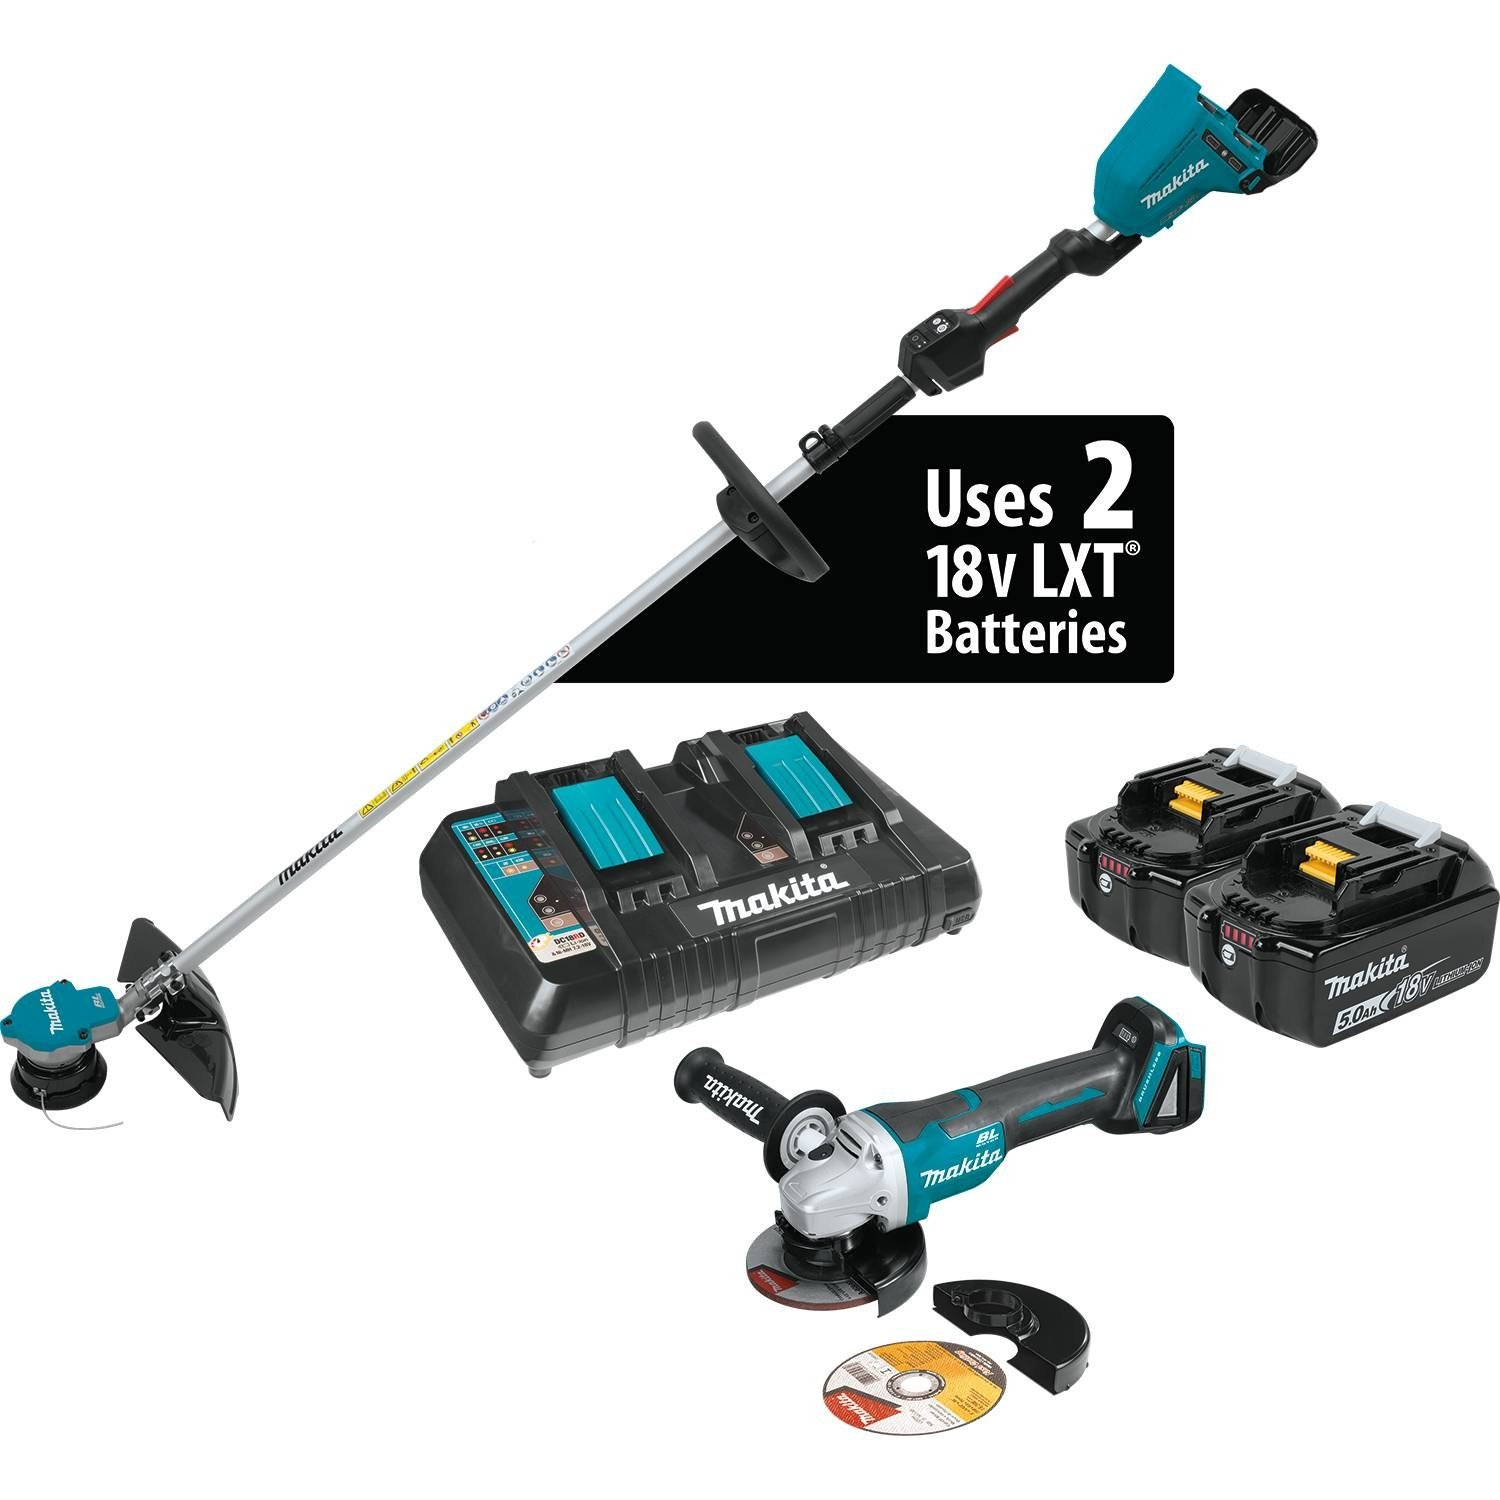 Cheap Angle Grinder Cordless Find Deals On Metabo W18 Ltx 125 Get Quotations Makita Xru09ptx1 18v X2 36v Lxt Lithium Ion Brushless String Trimmer Kit